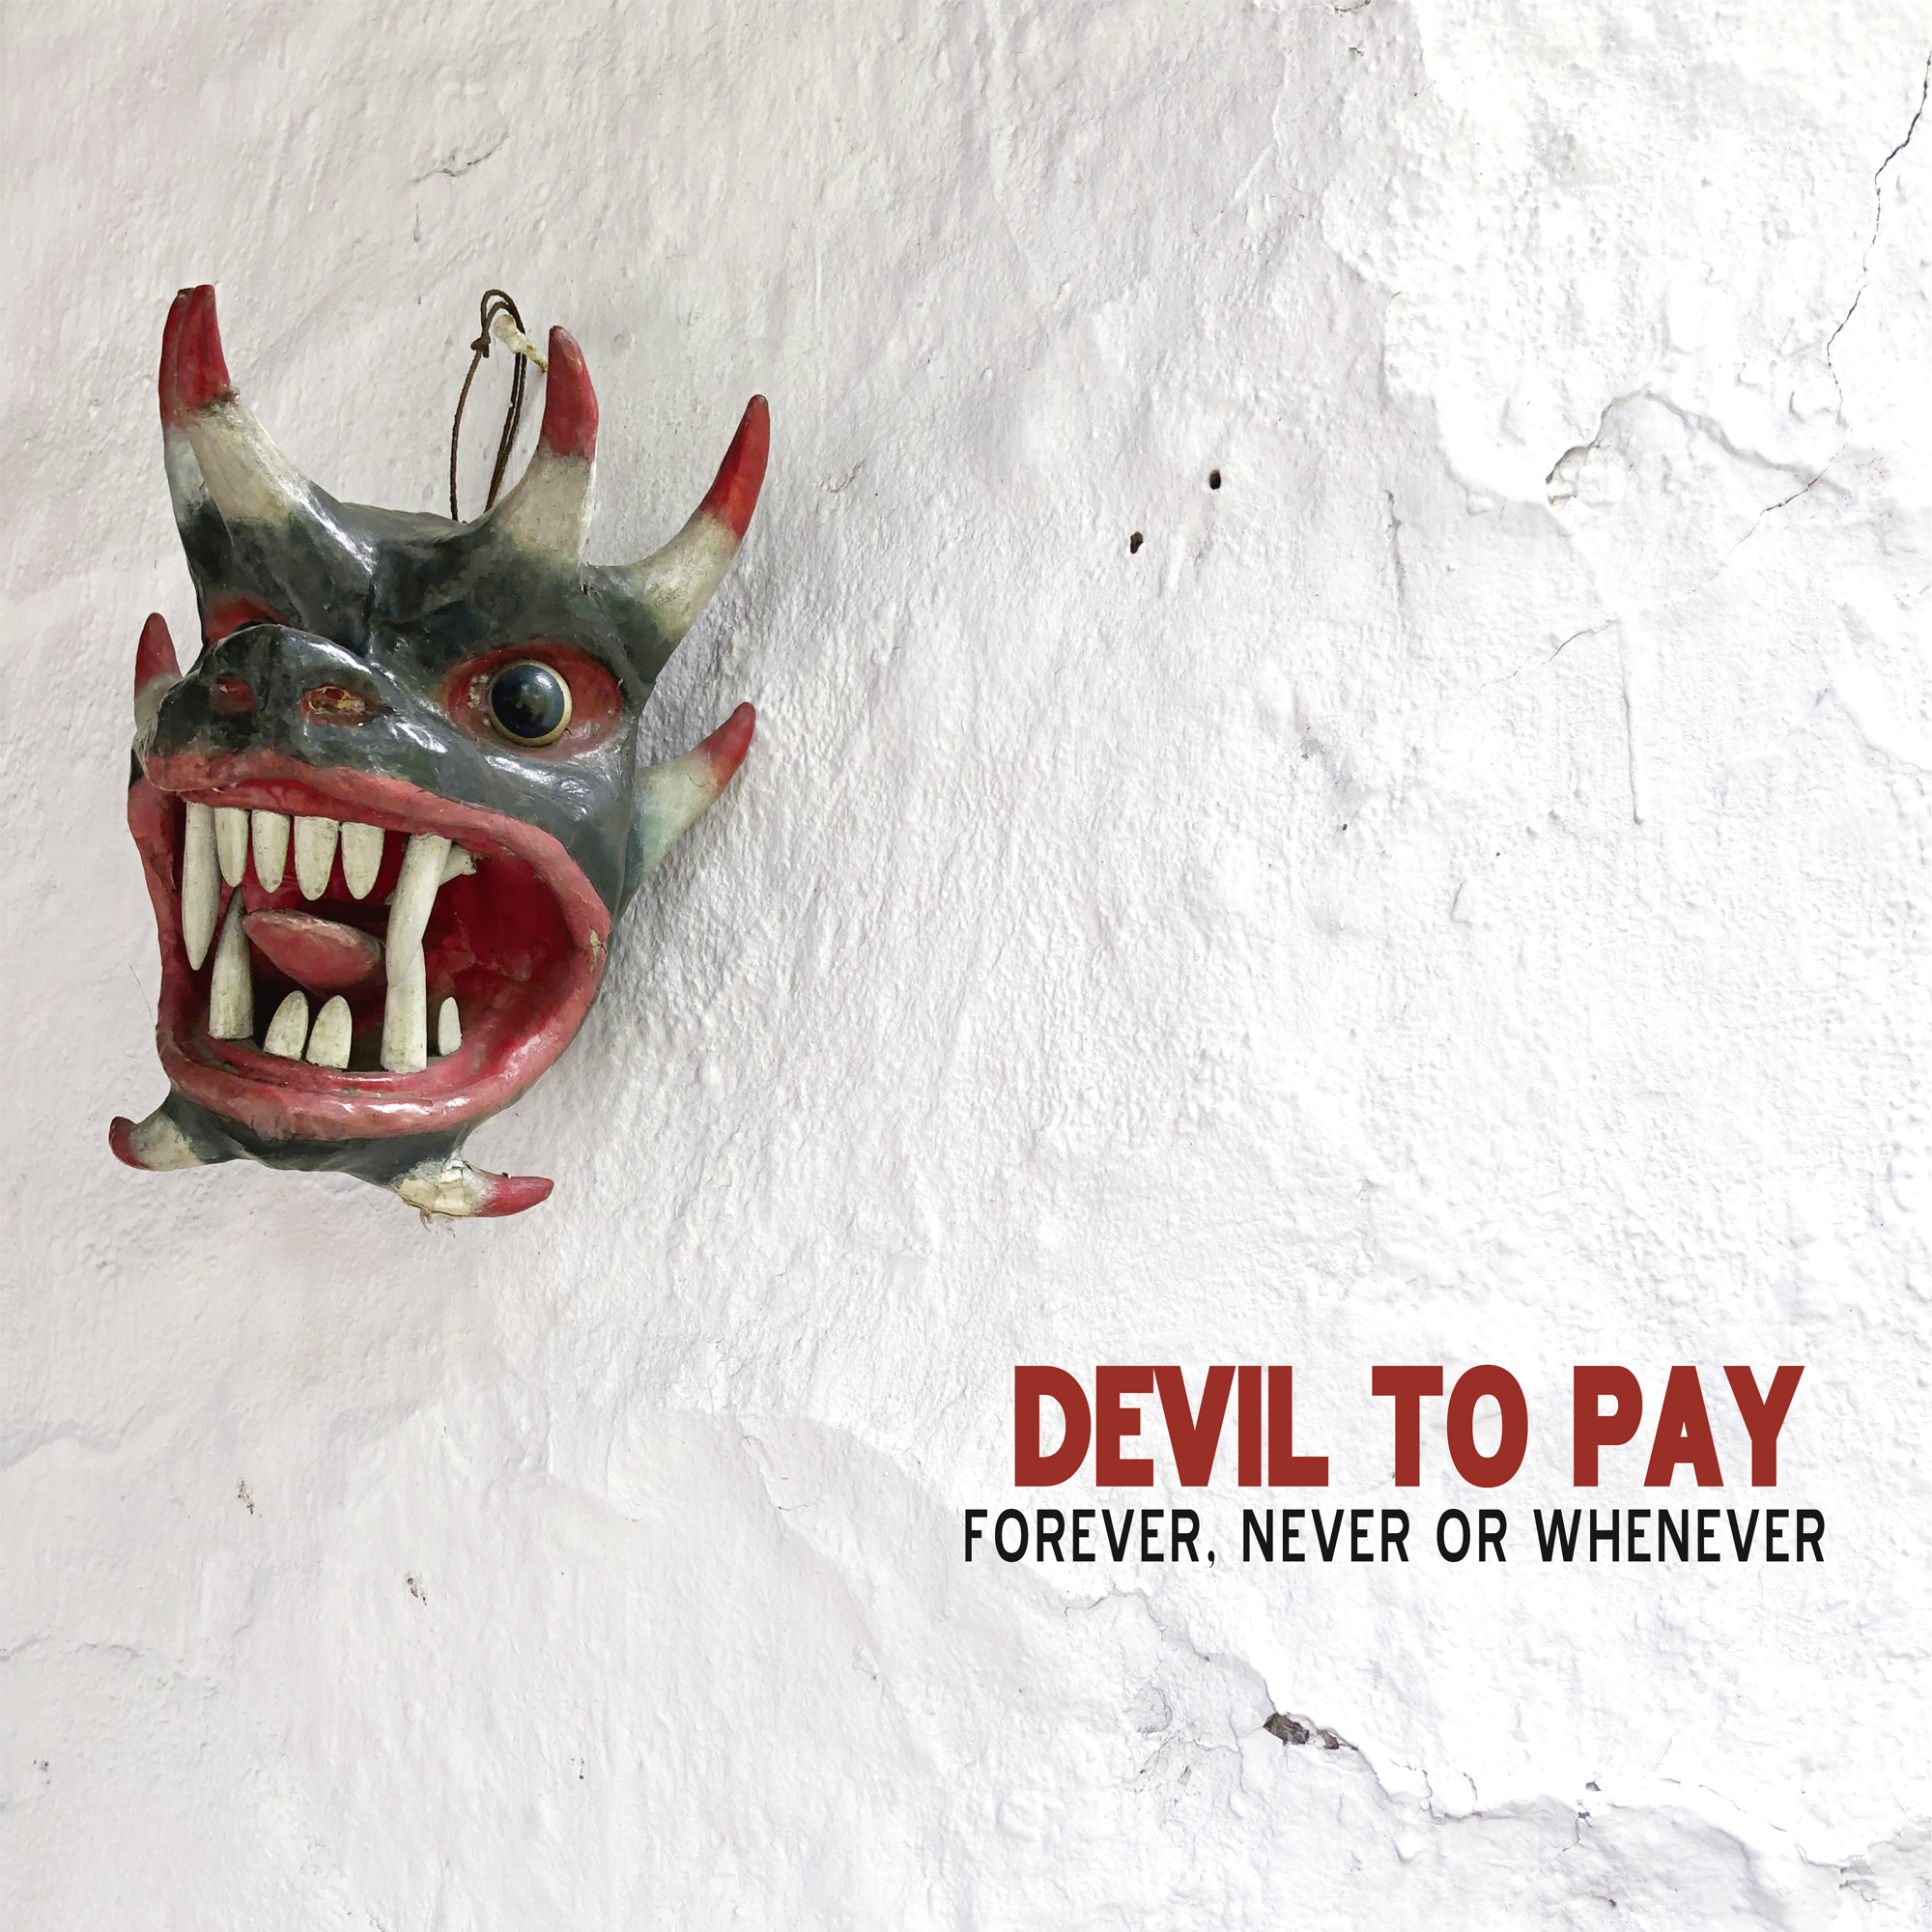 devil to pay forever never or whenever